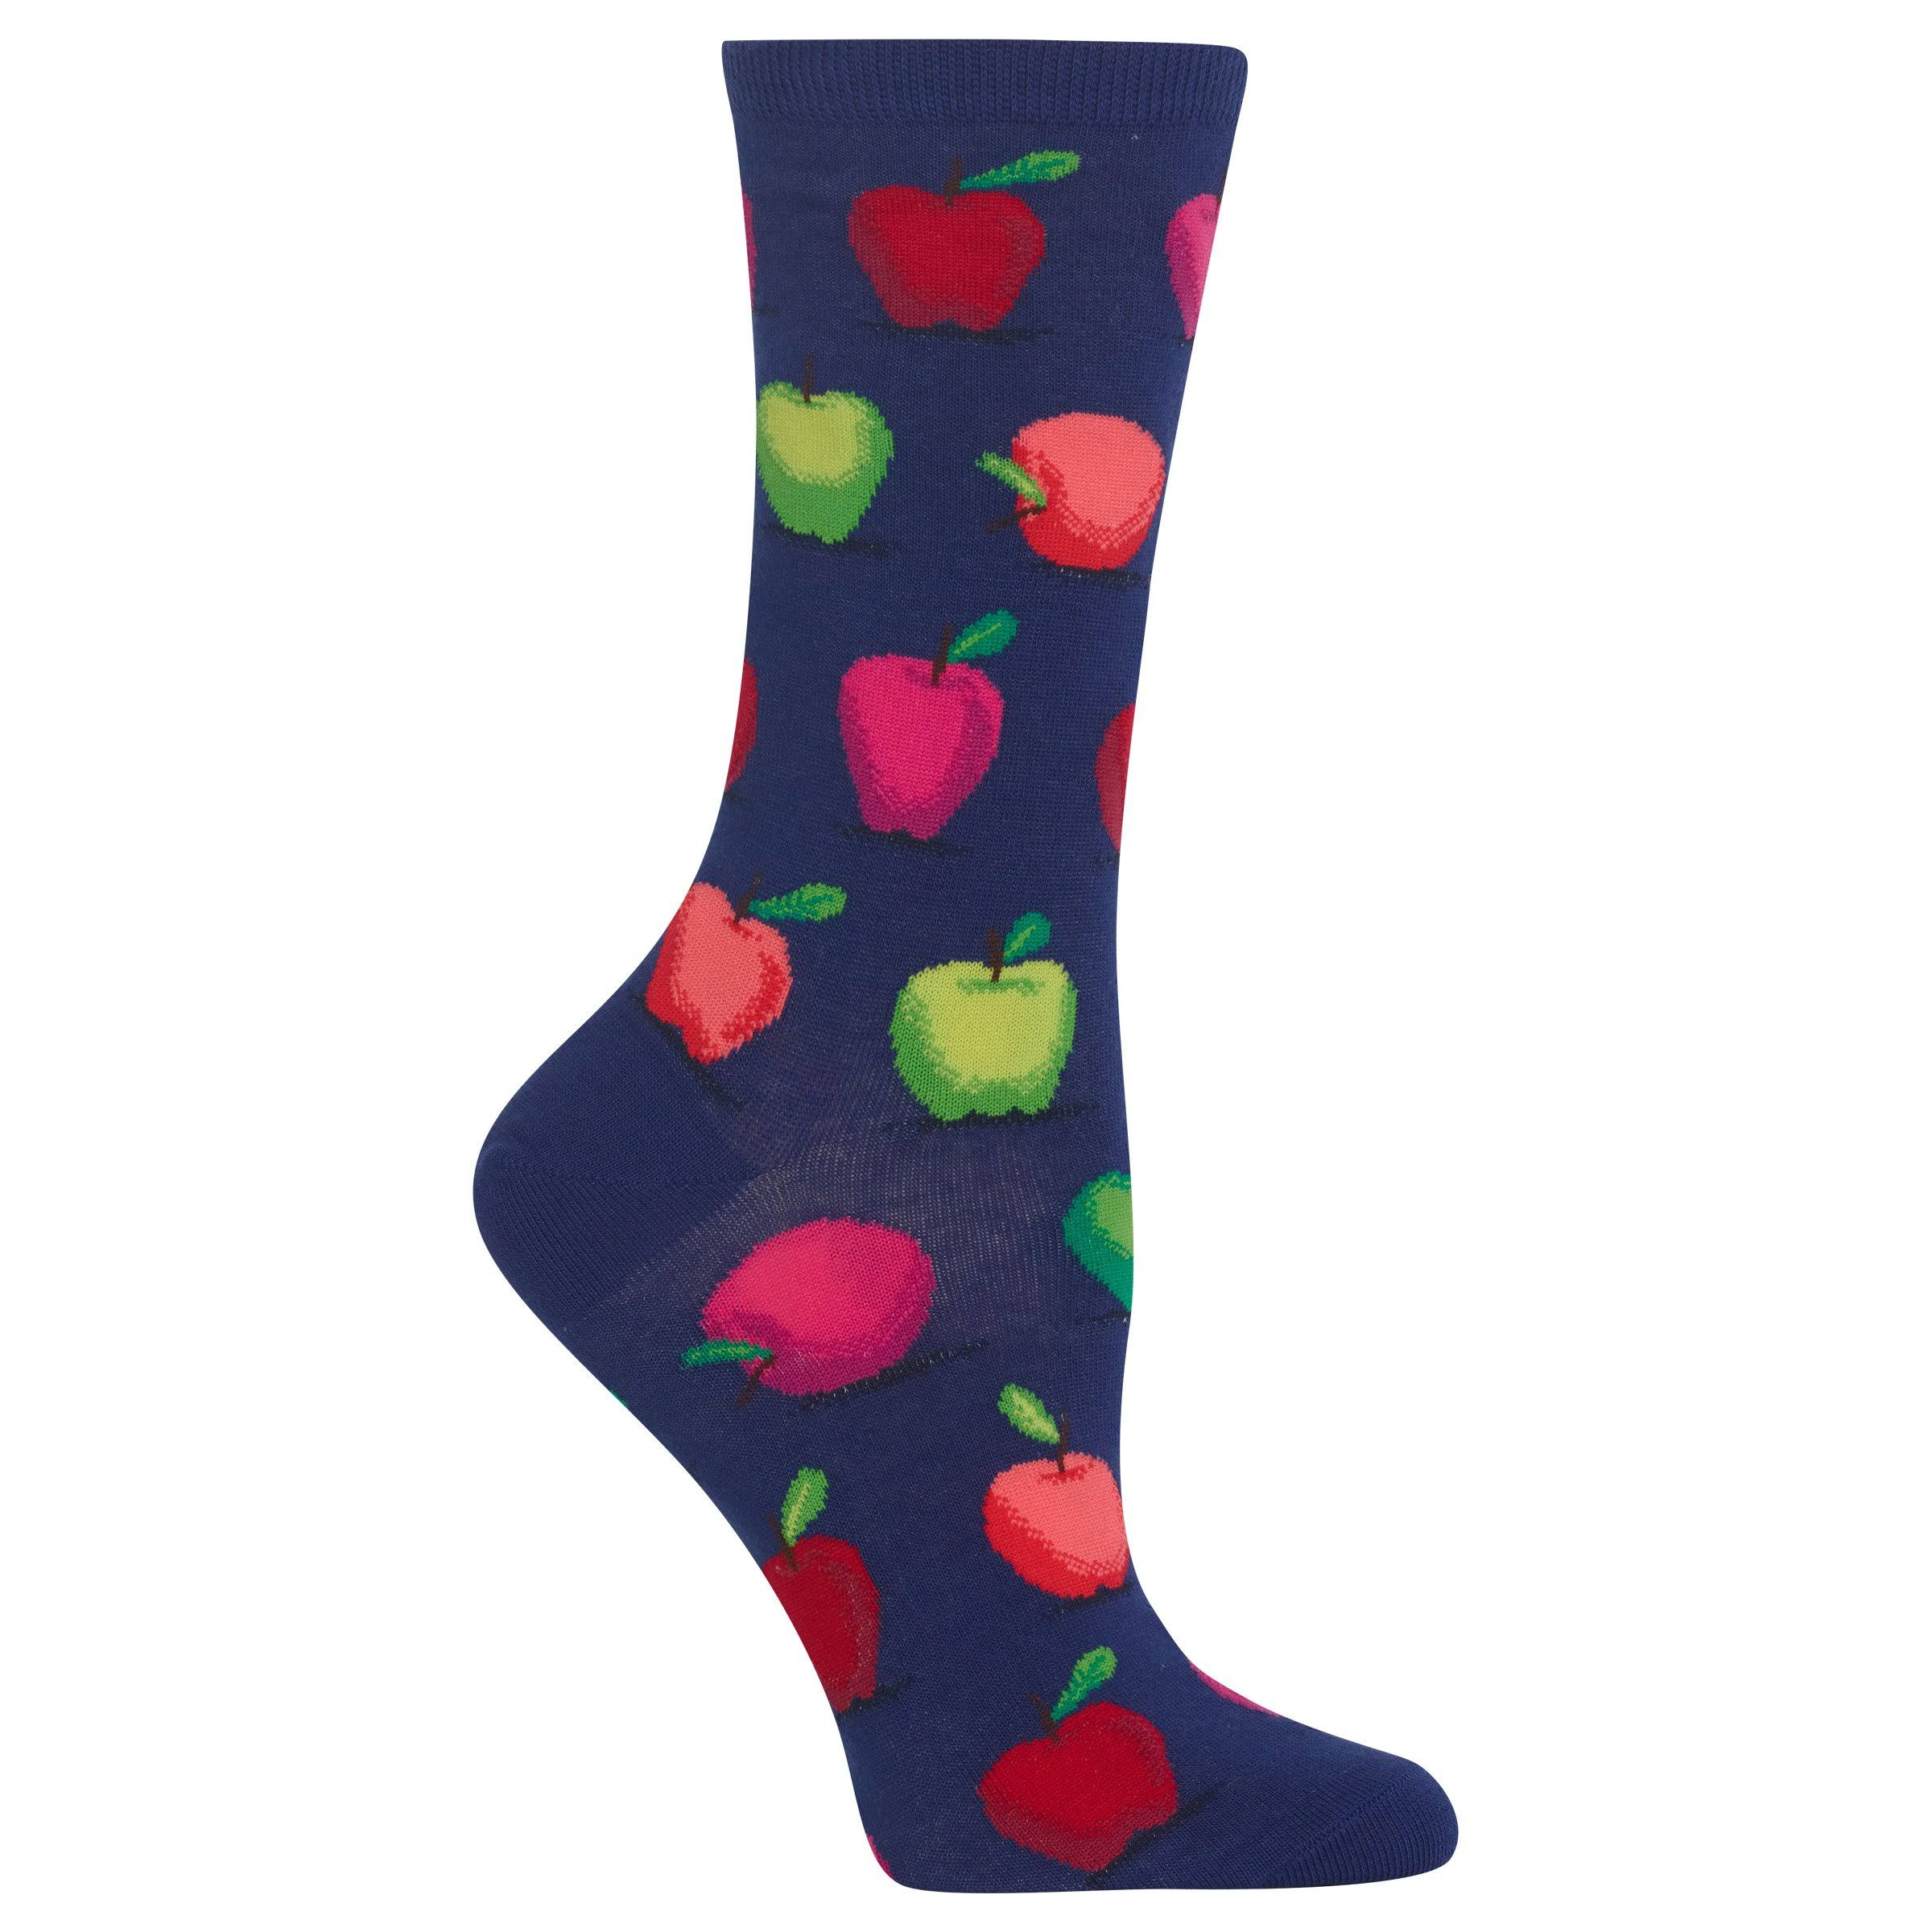 Hot Sox Women's Apples Socks - Blue